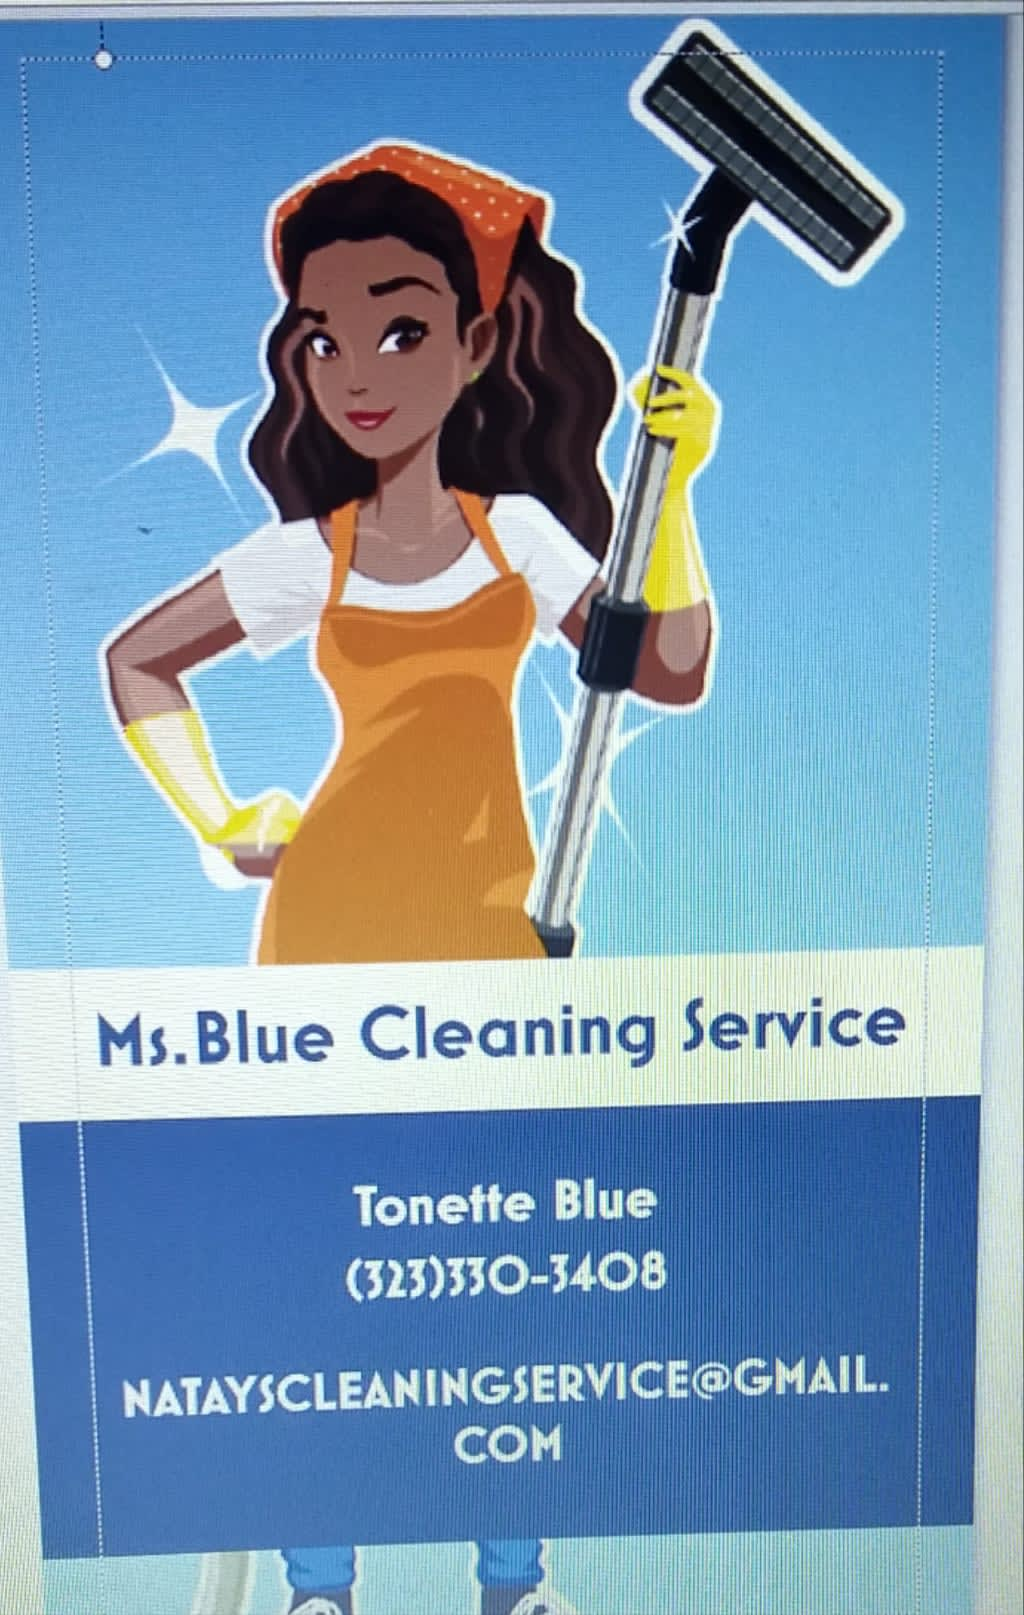 Ms. Blue Cleaning Service